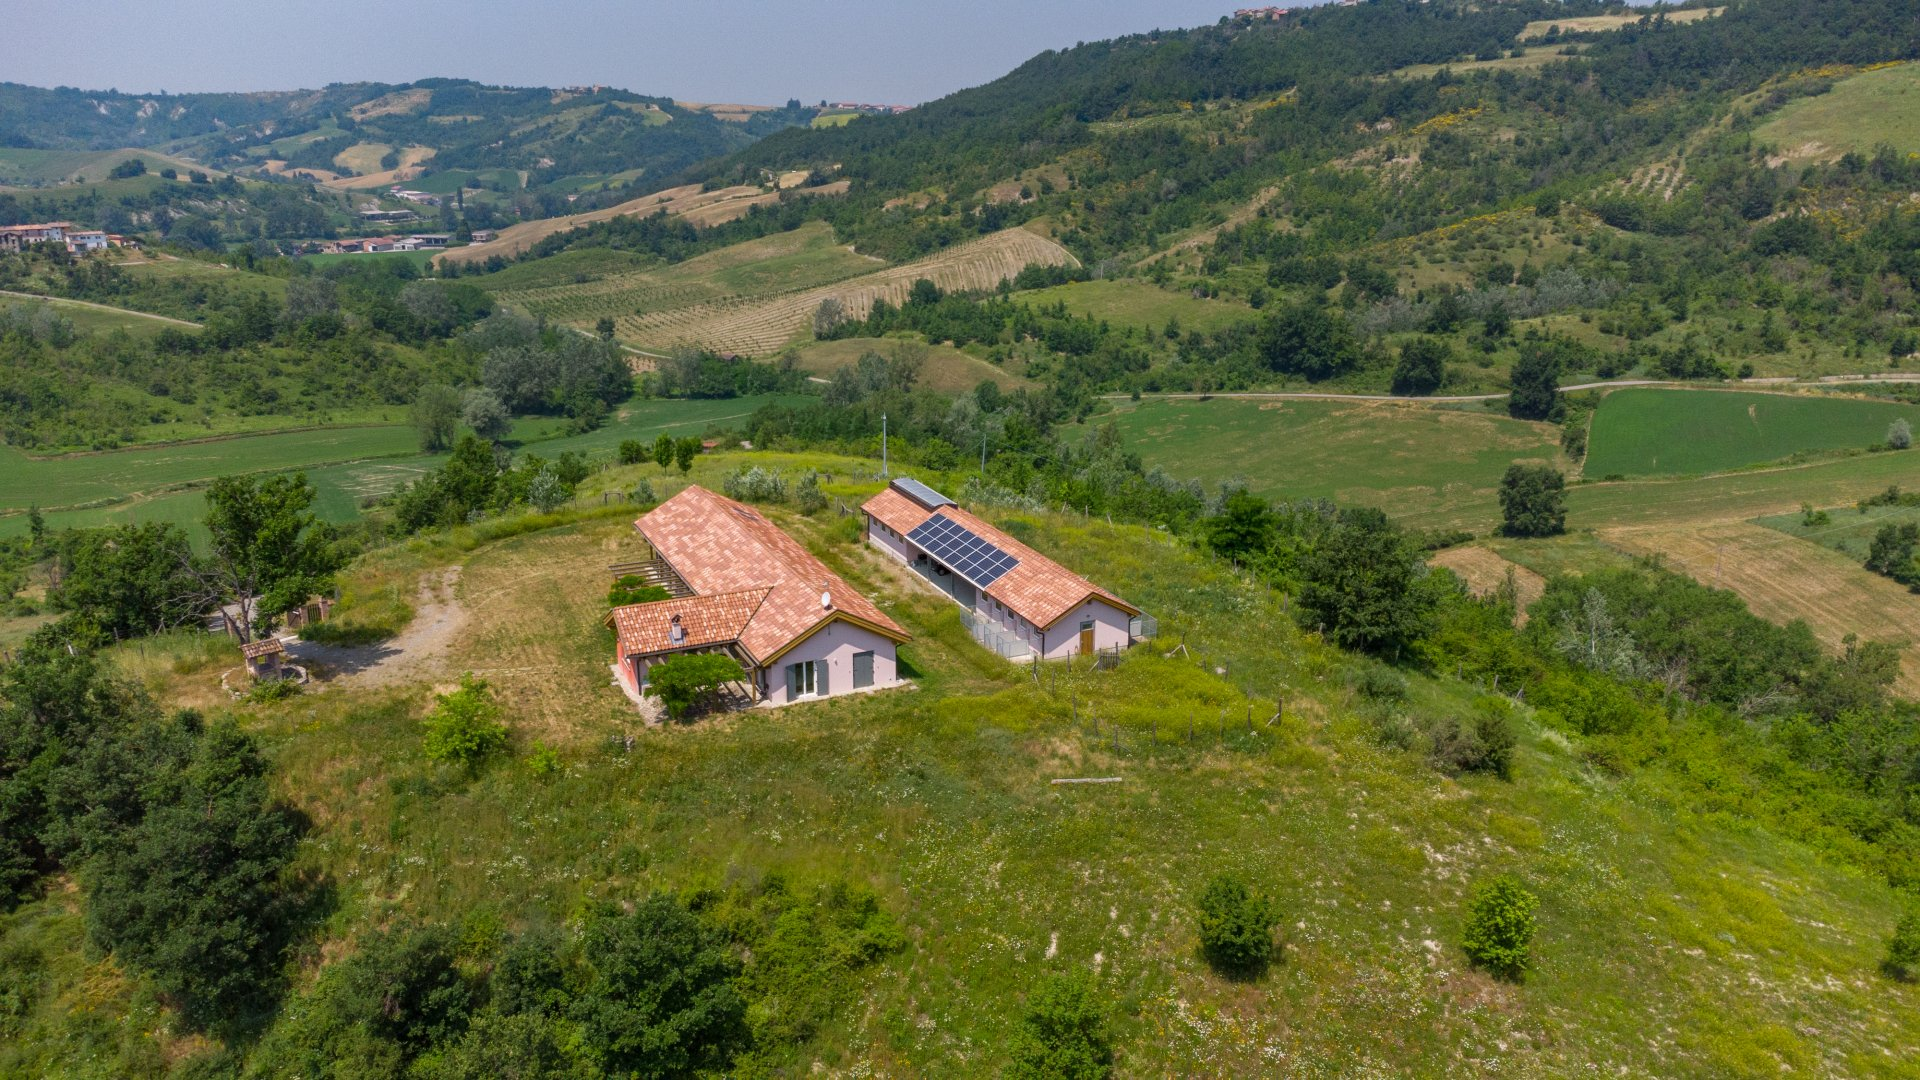 Property for sale in Casasco in Val Grue, South Piedmont